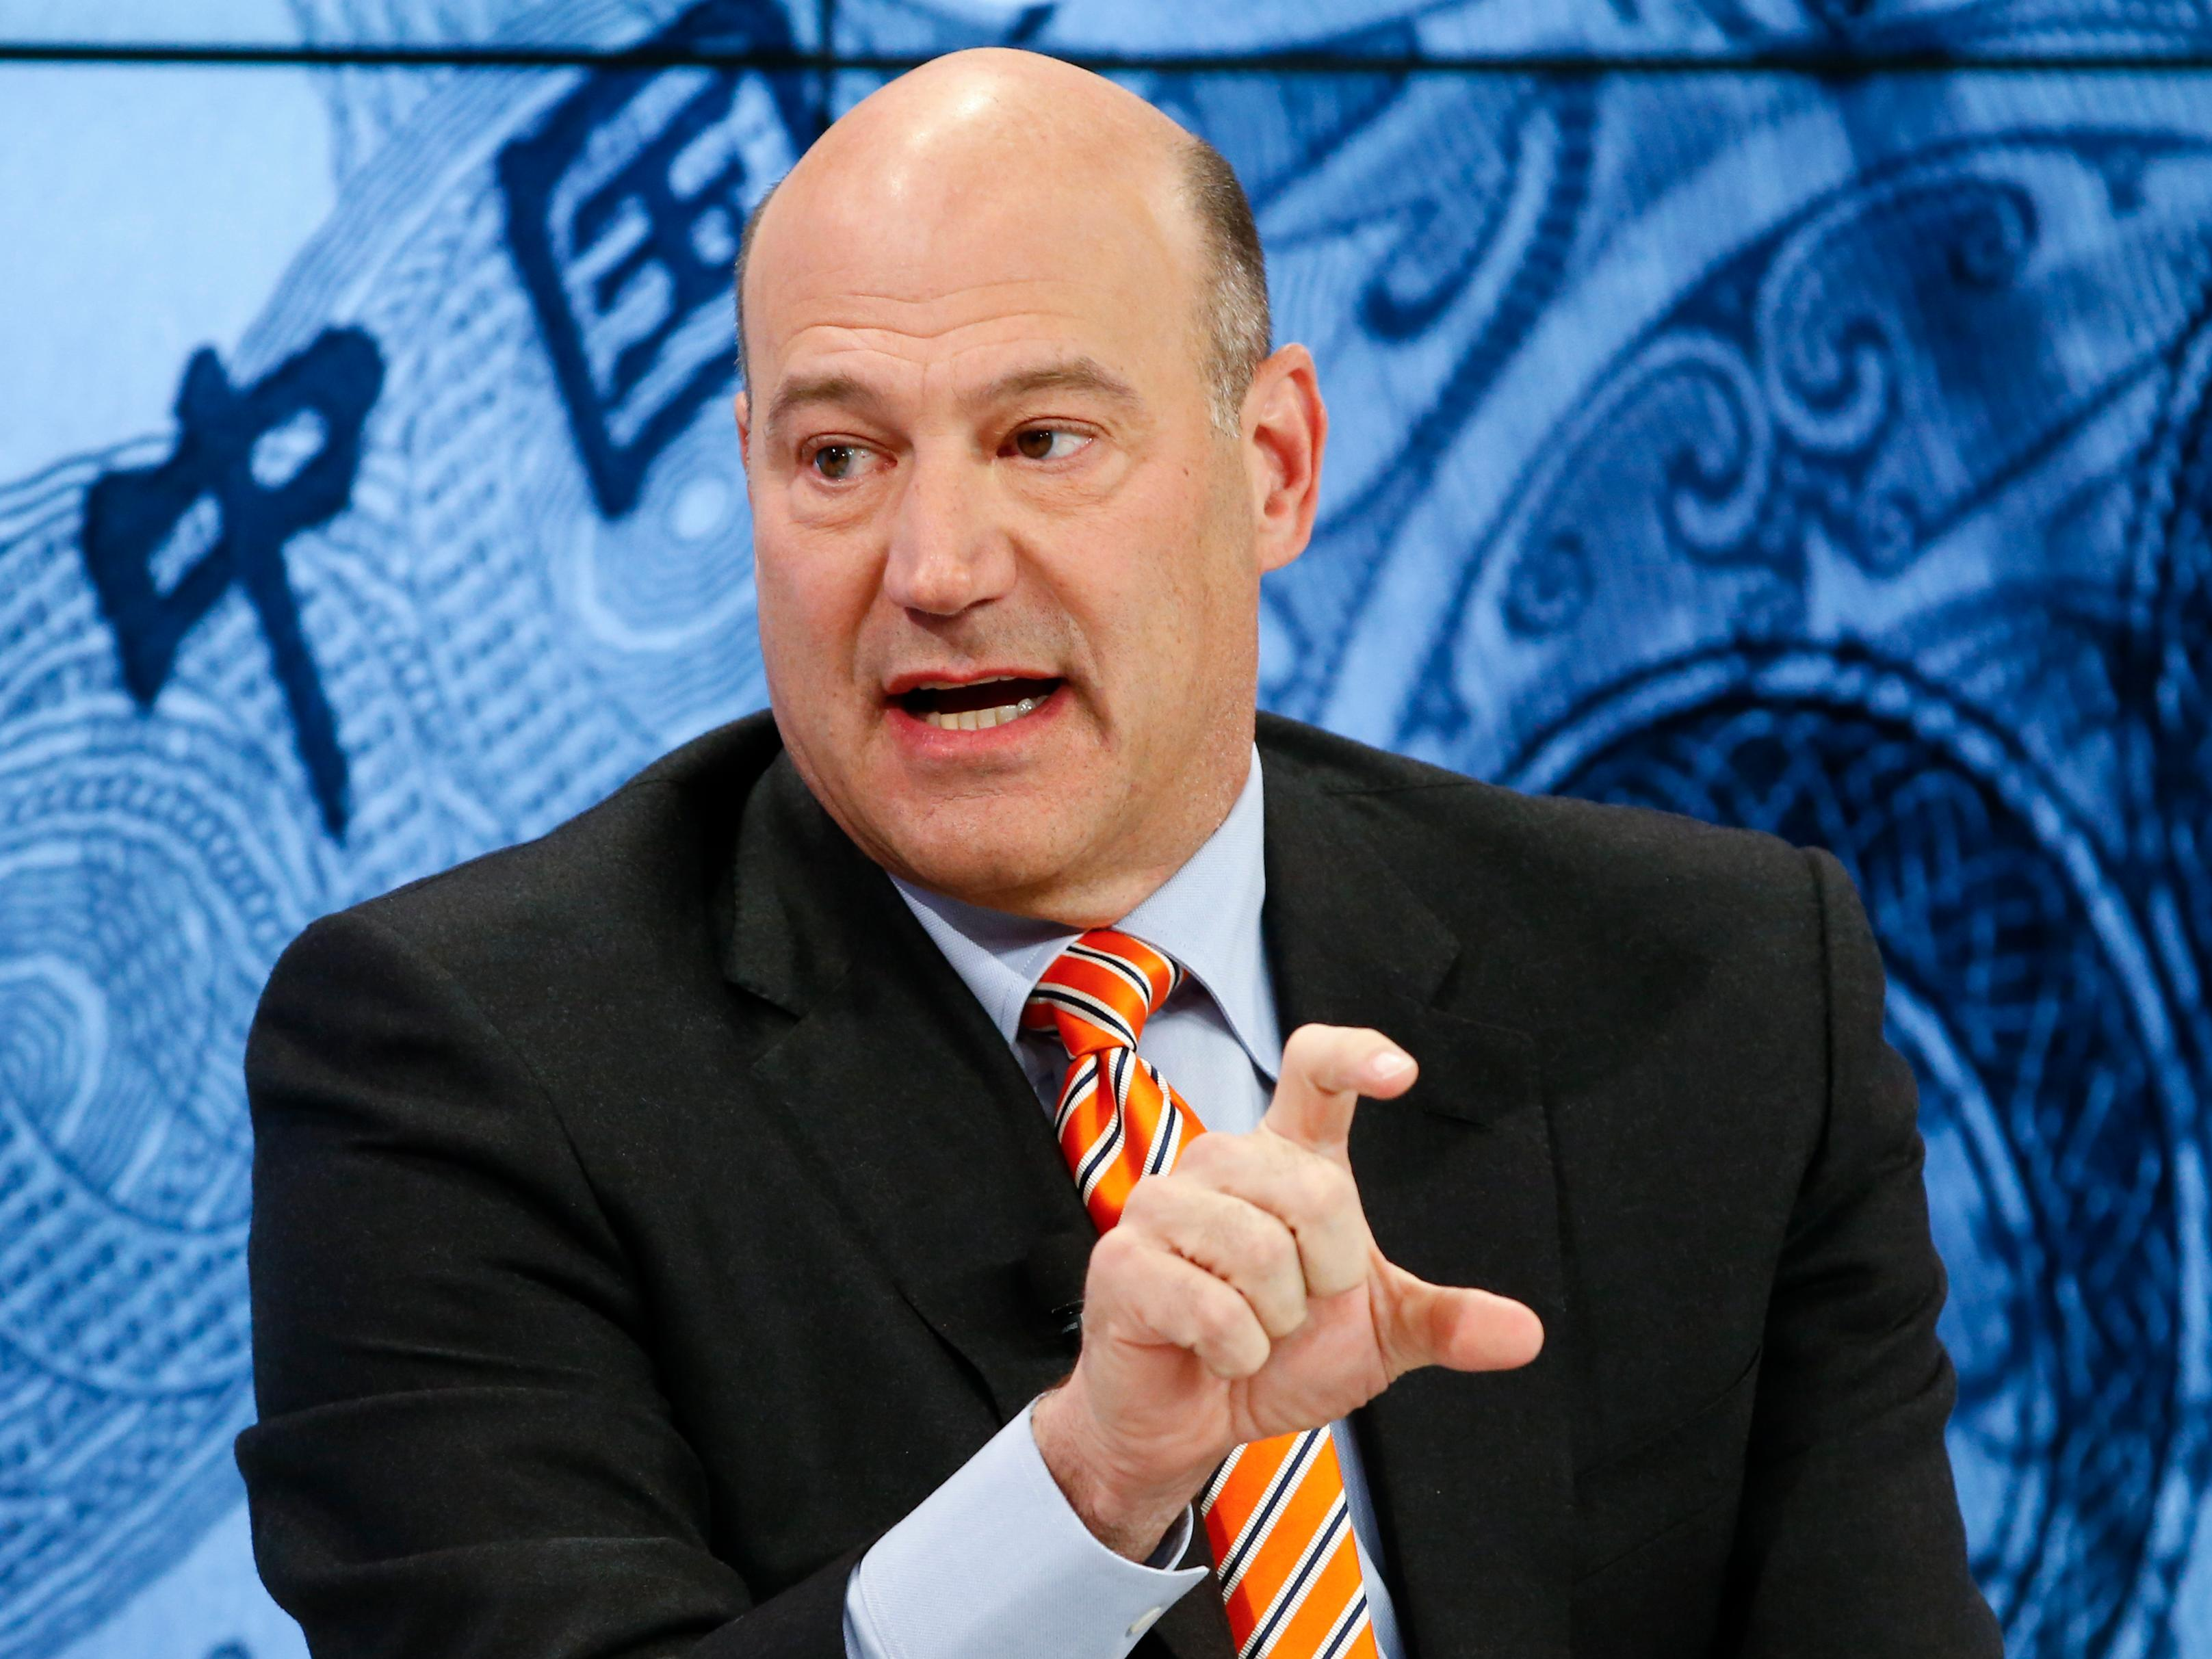 Here is what happens next in Silicon Valley, according to Goldman Sachs President Gary Cohn